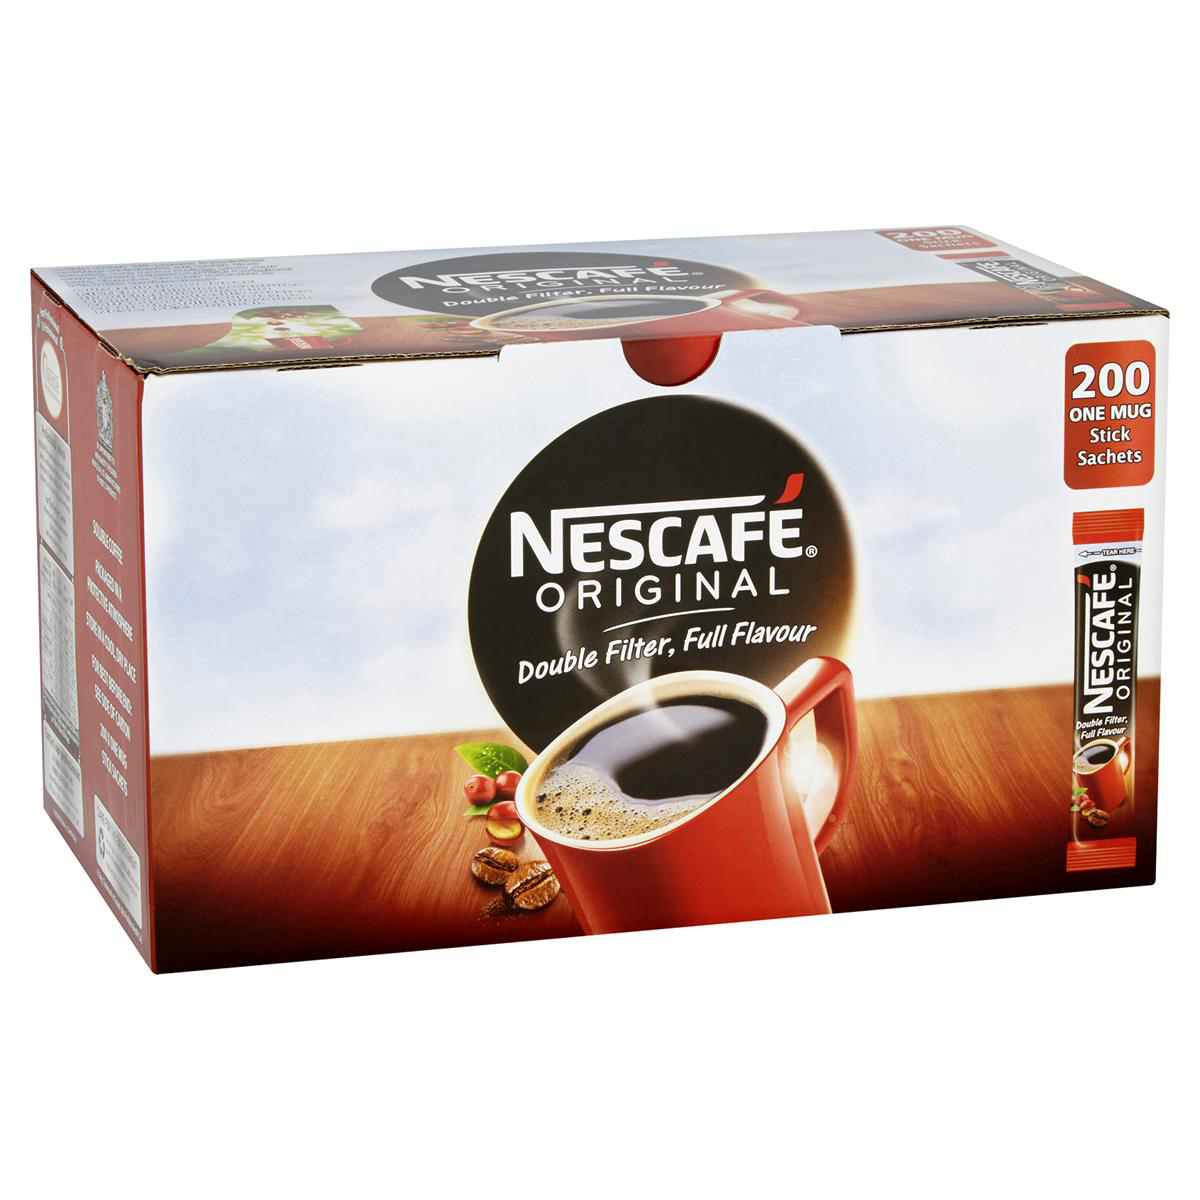 Nescafe Original Instant Coffee Granules Stick Sachets Ref 12348358 Pack 200